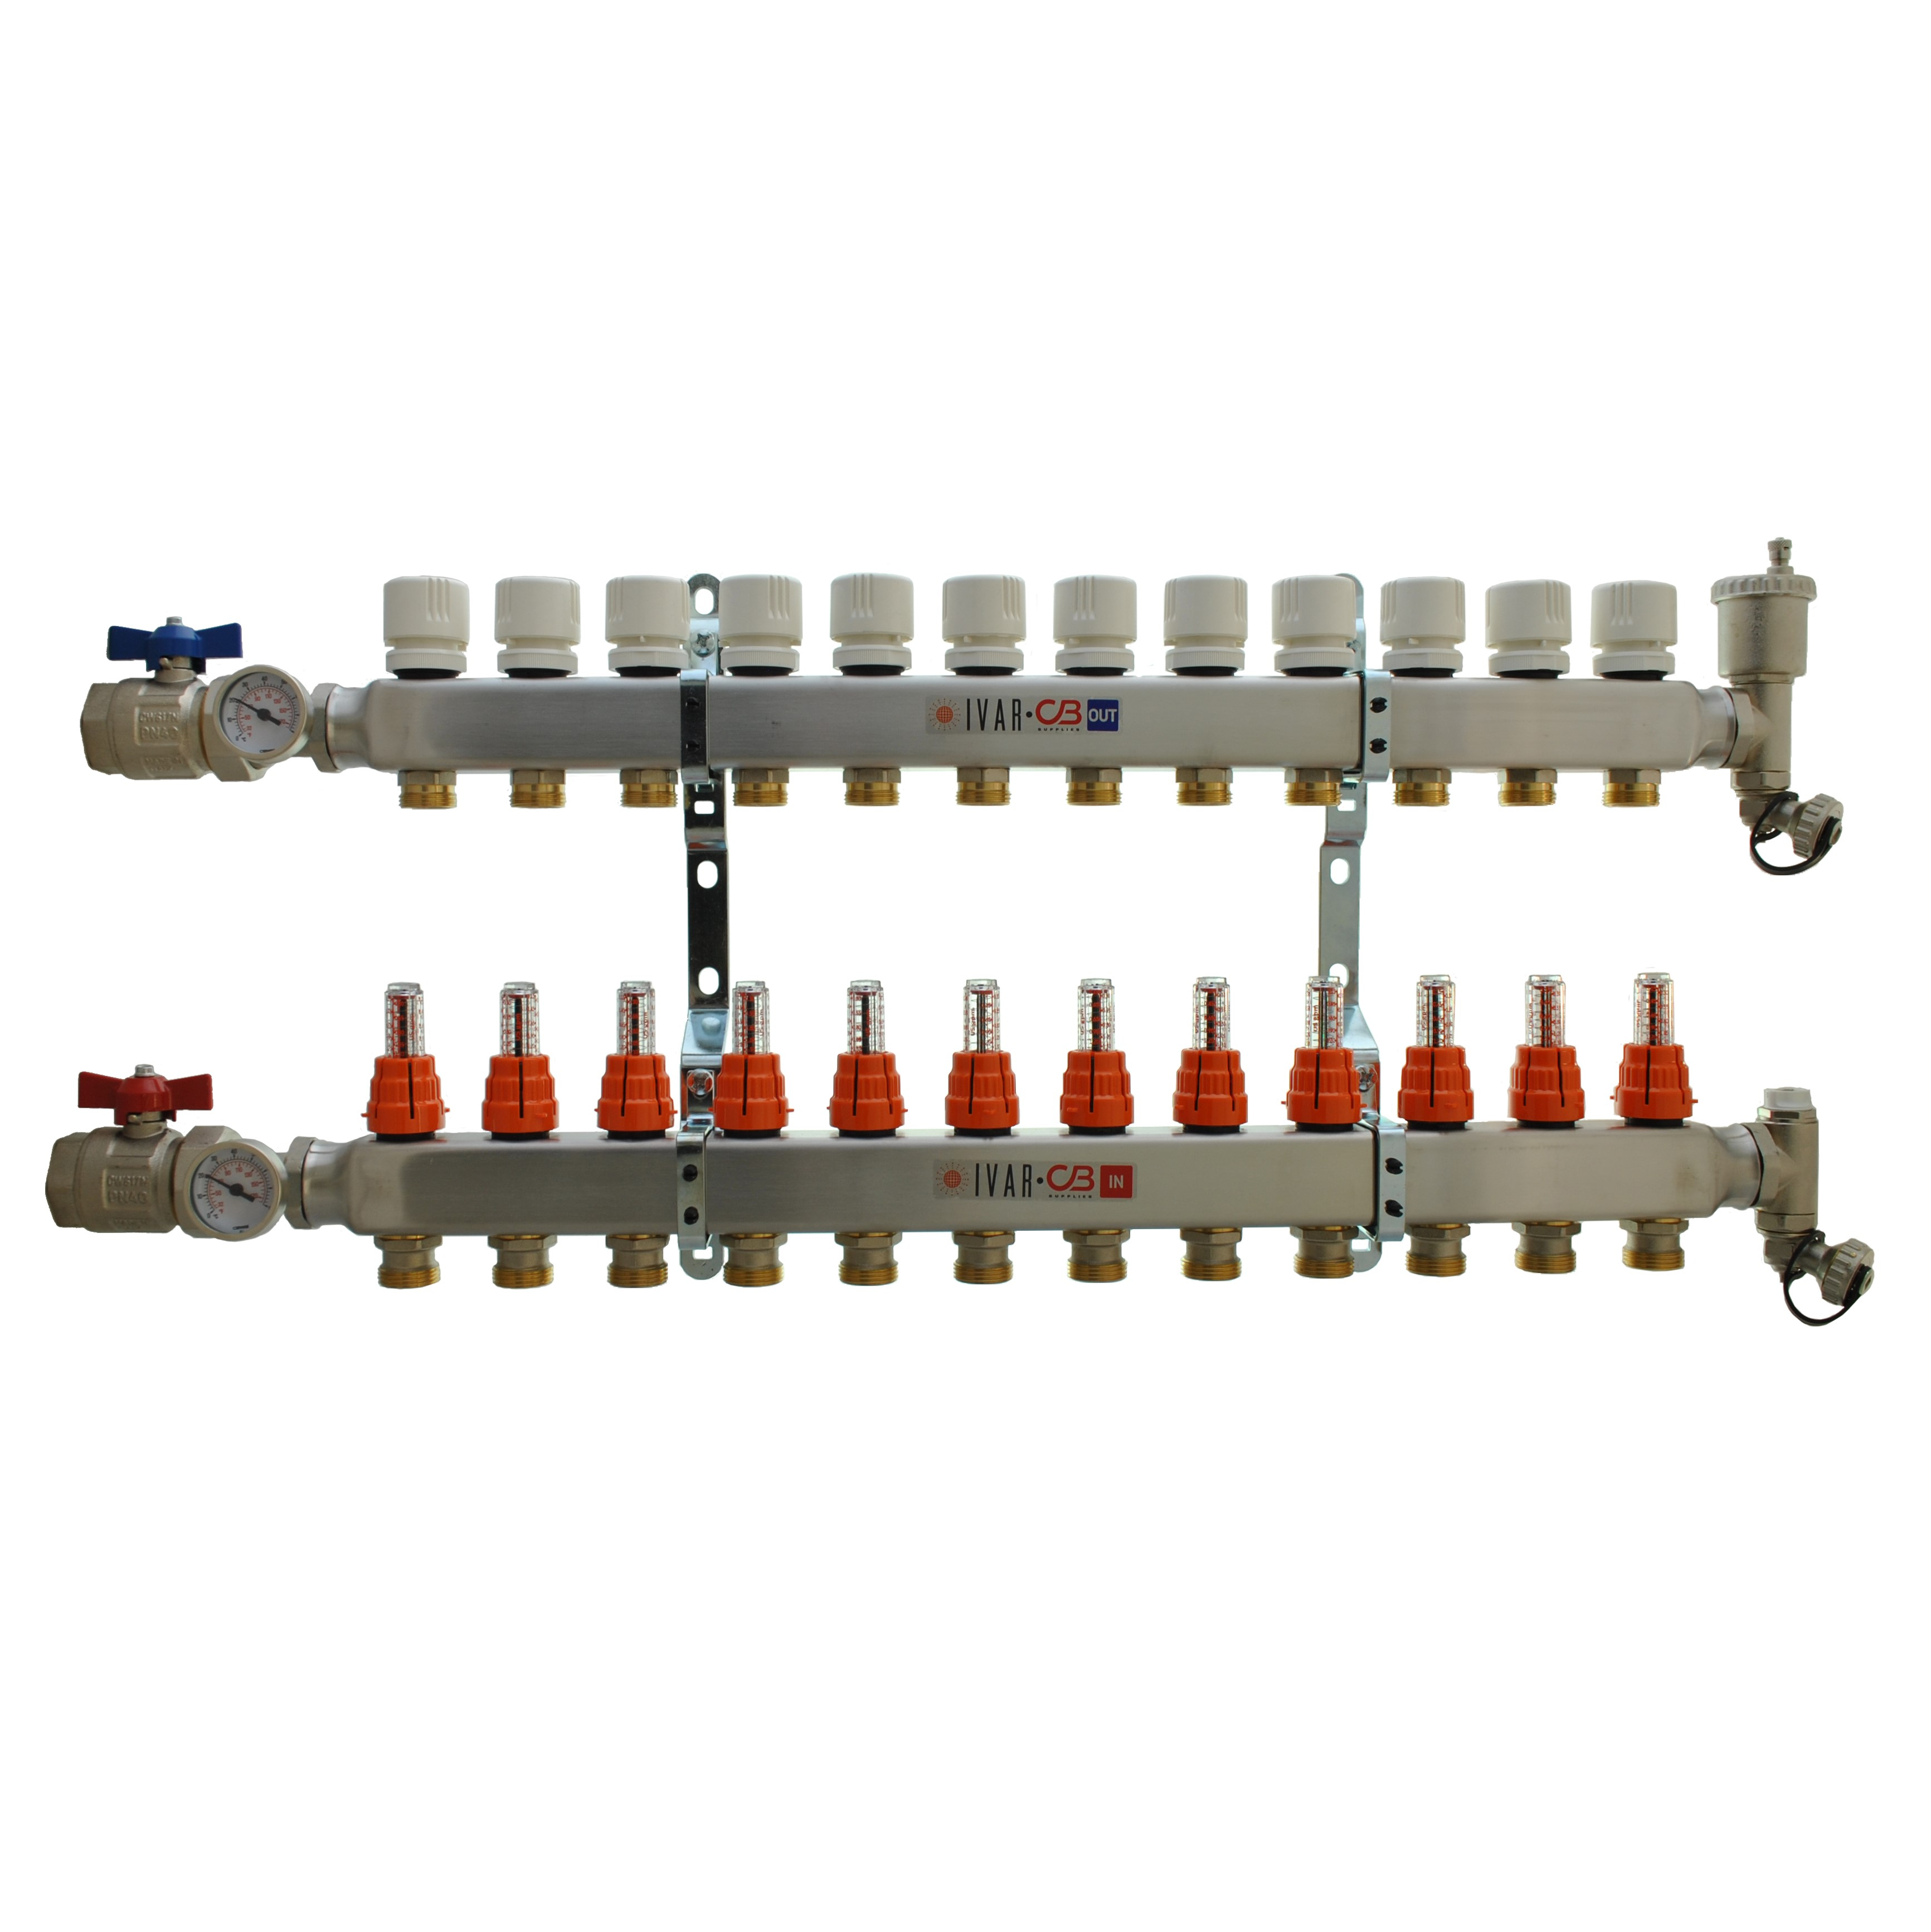 "1"" IVAR Stainless Steel Hydronic Manifold for Radiant Floor Heating - 12 ports"